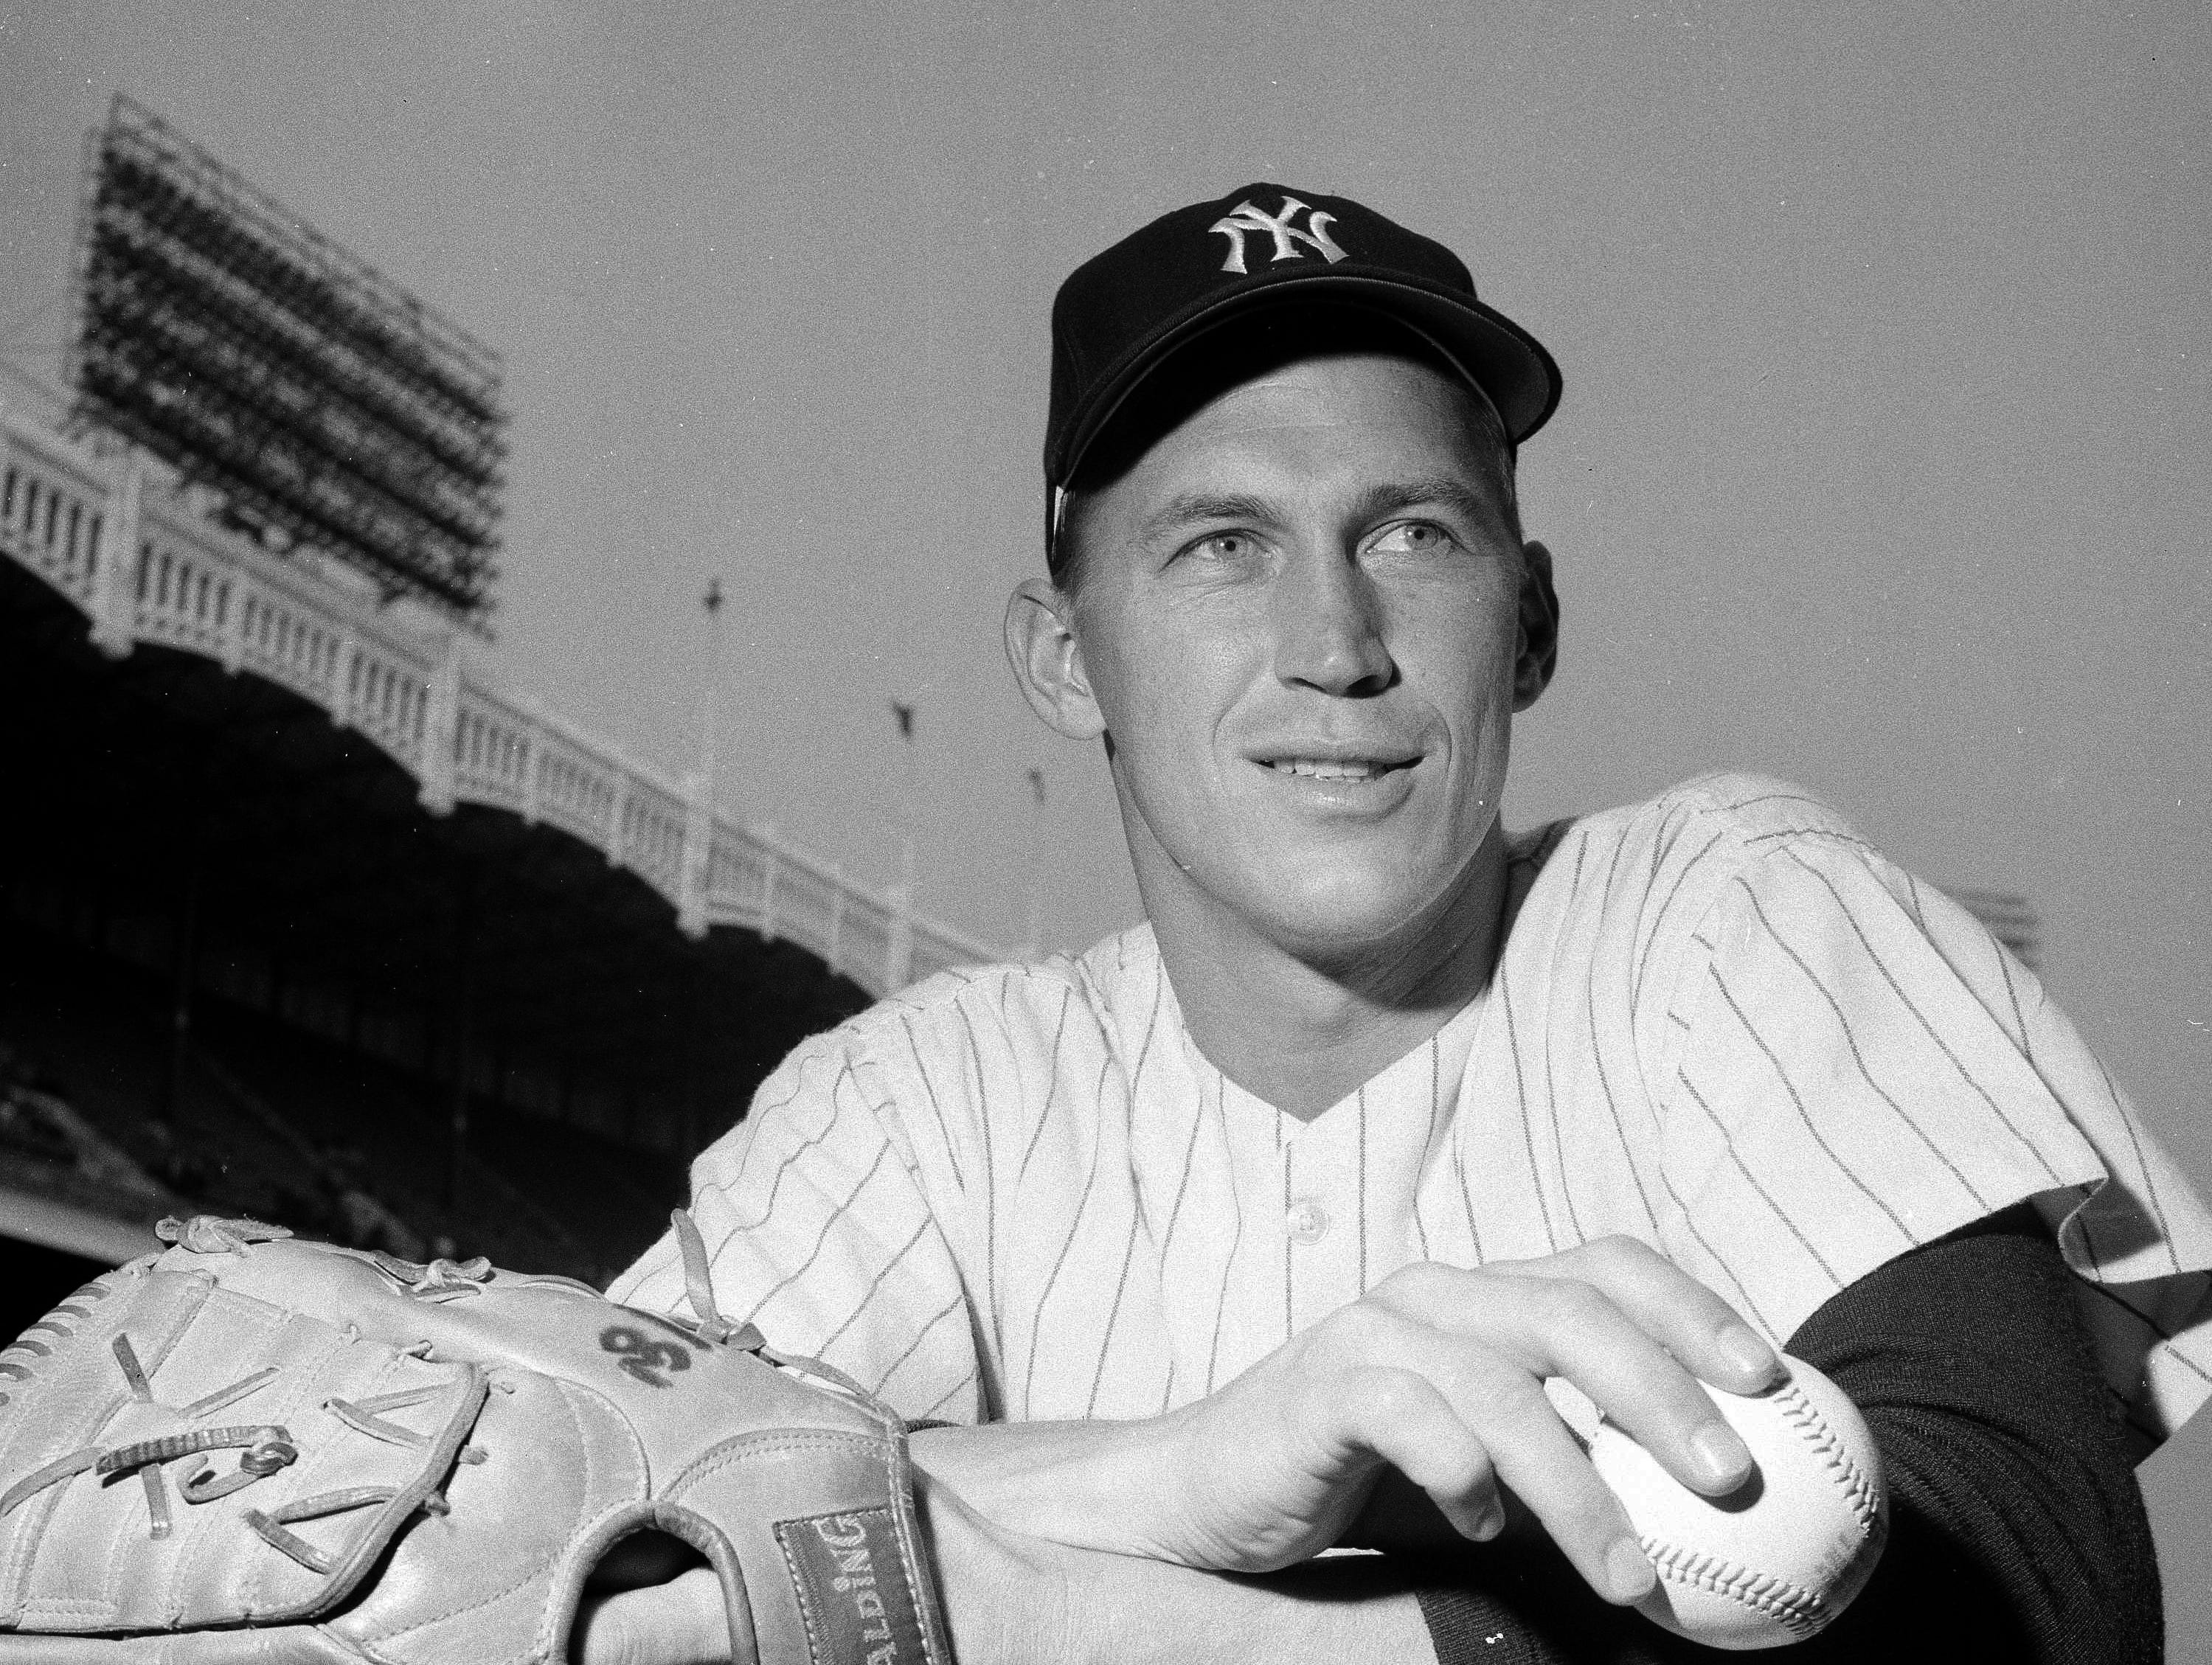 This is a 1967 file photo showing New York Yankees' Mel Stottlemyre. Stottlemyre, the former ace who later won five World Series rings as the longtime pitching coach for both the New York Yankees and Mets, has died. He was 77. The Yankees said Stottlemyre died Sunday, Jan.13, 2019. He had been living in the Seattle area and had multiple myeloma for nearly 20 years.